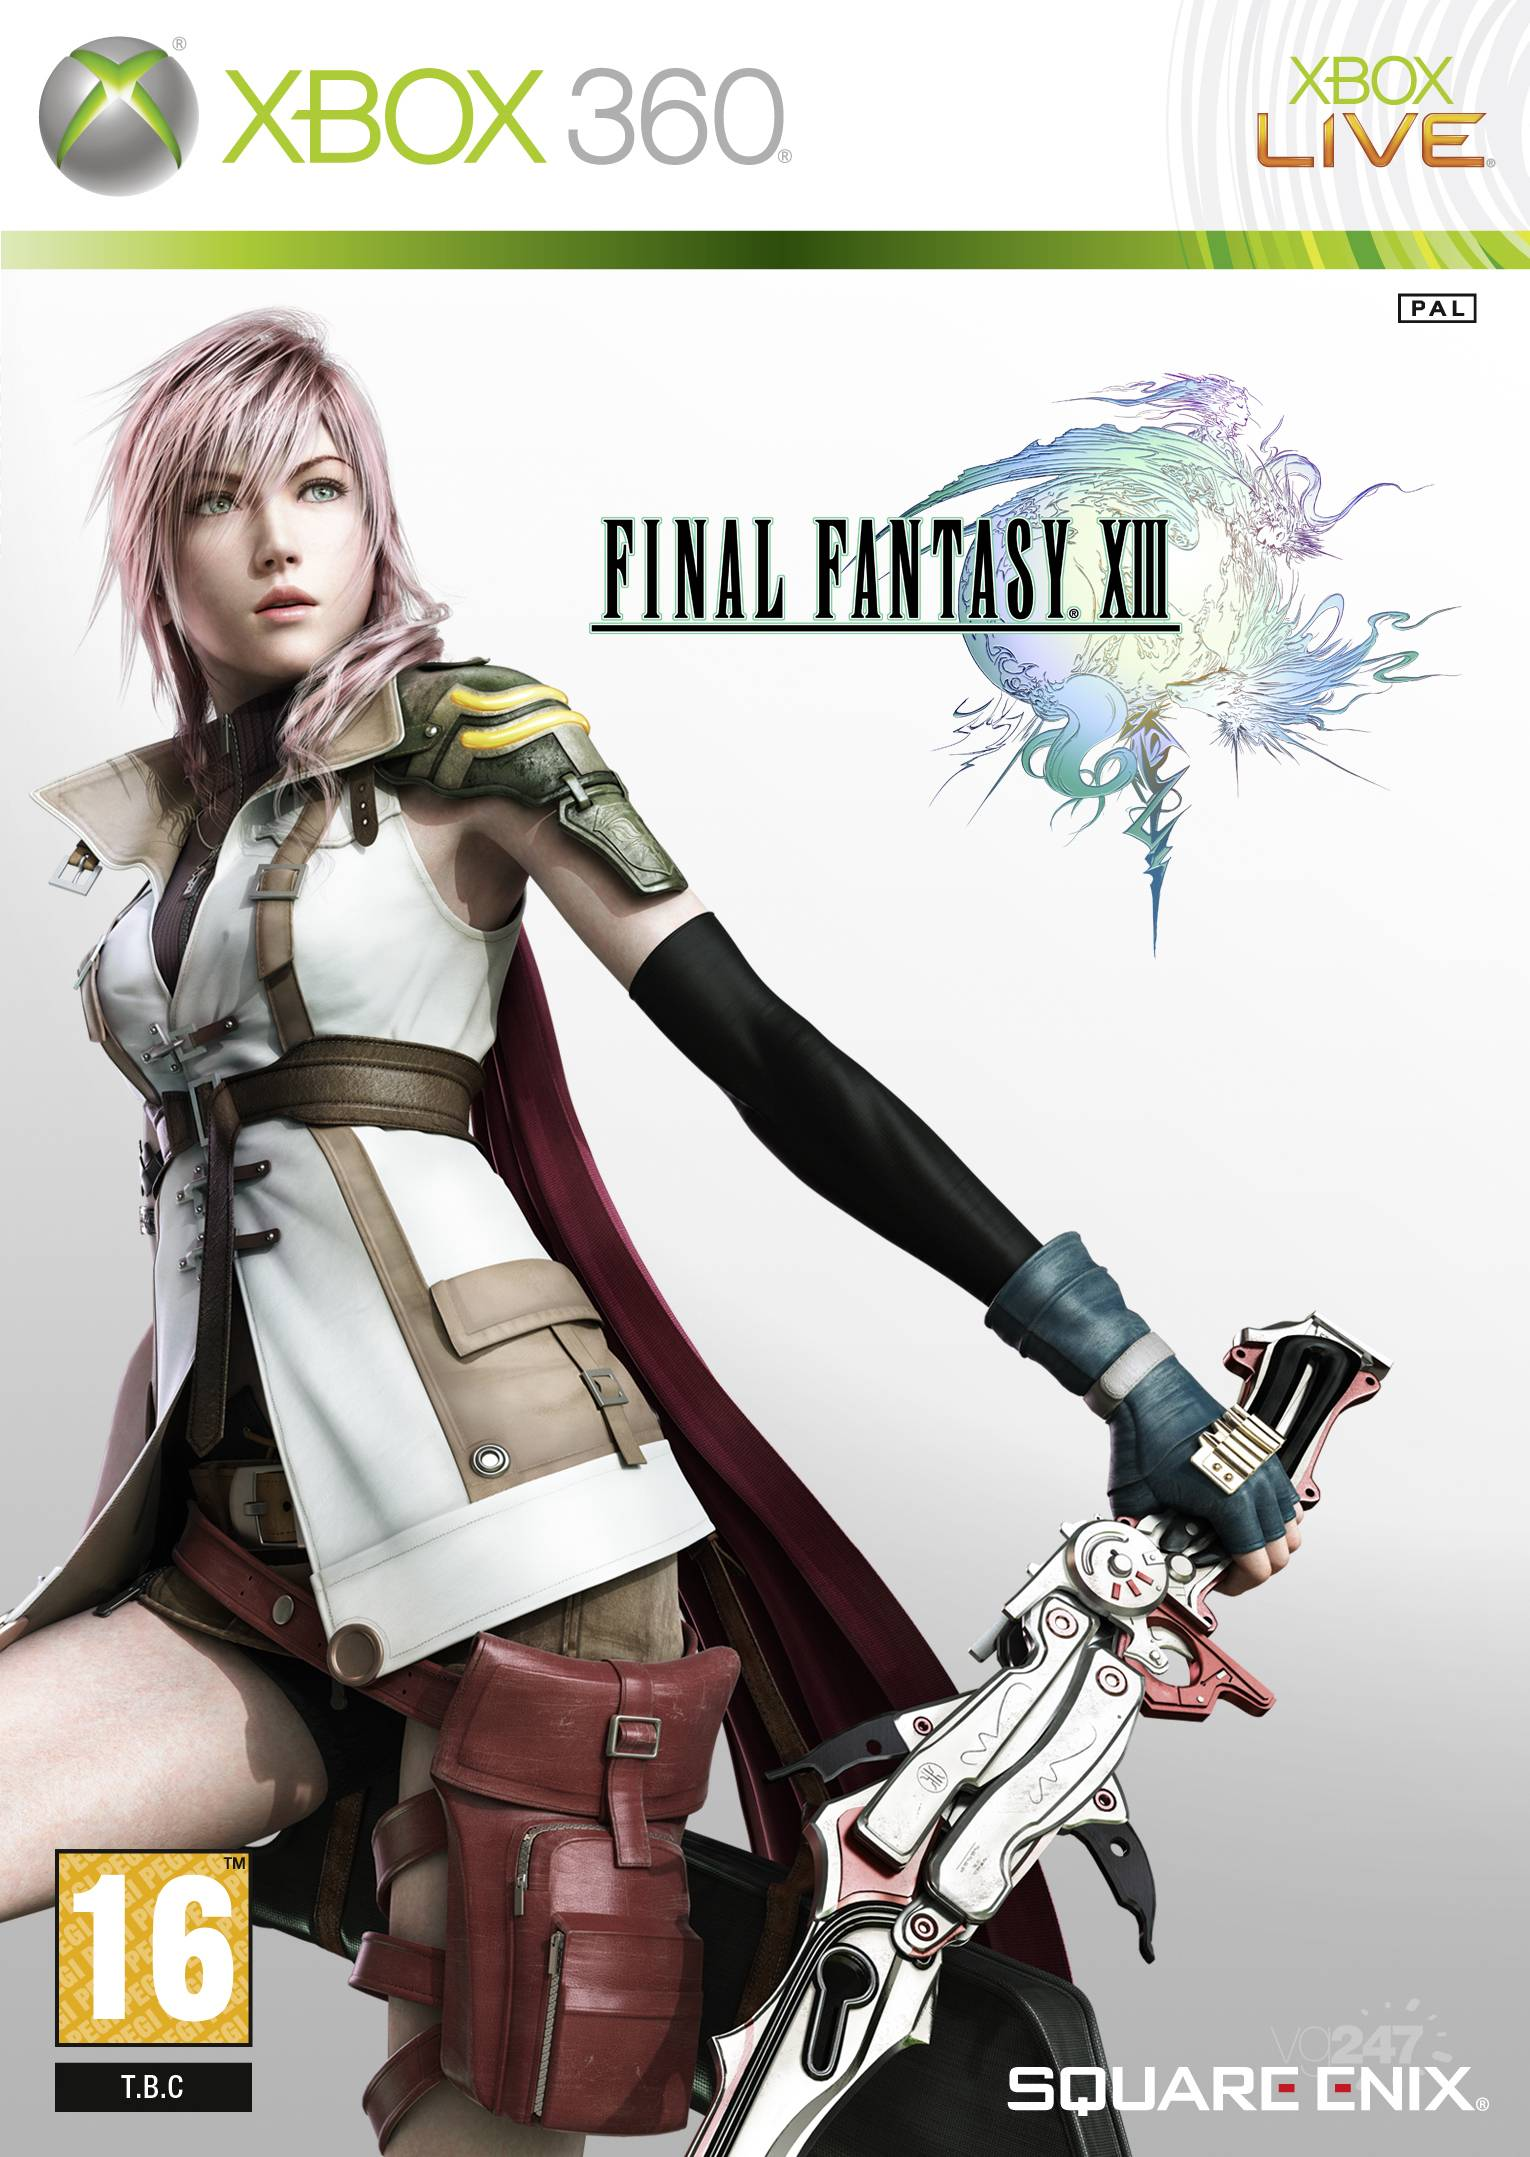 Final Fantasy XIII 13 Square Enix xbox 360